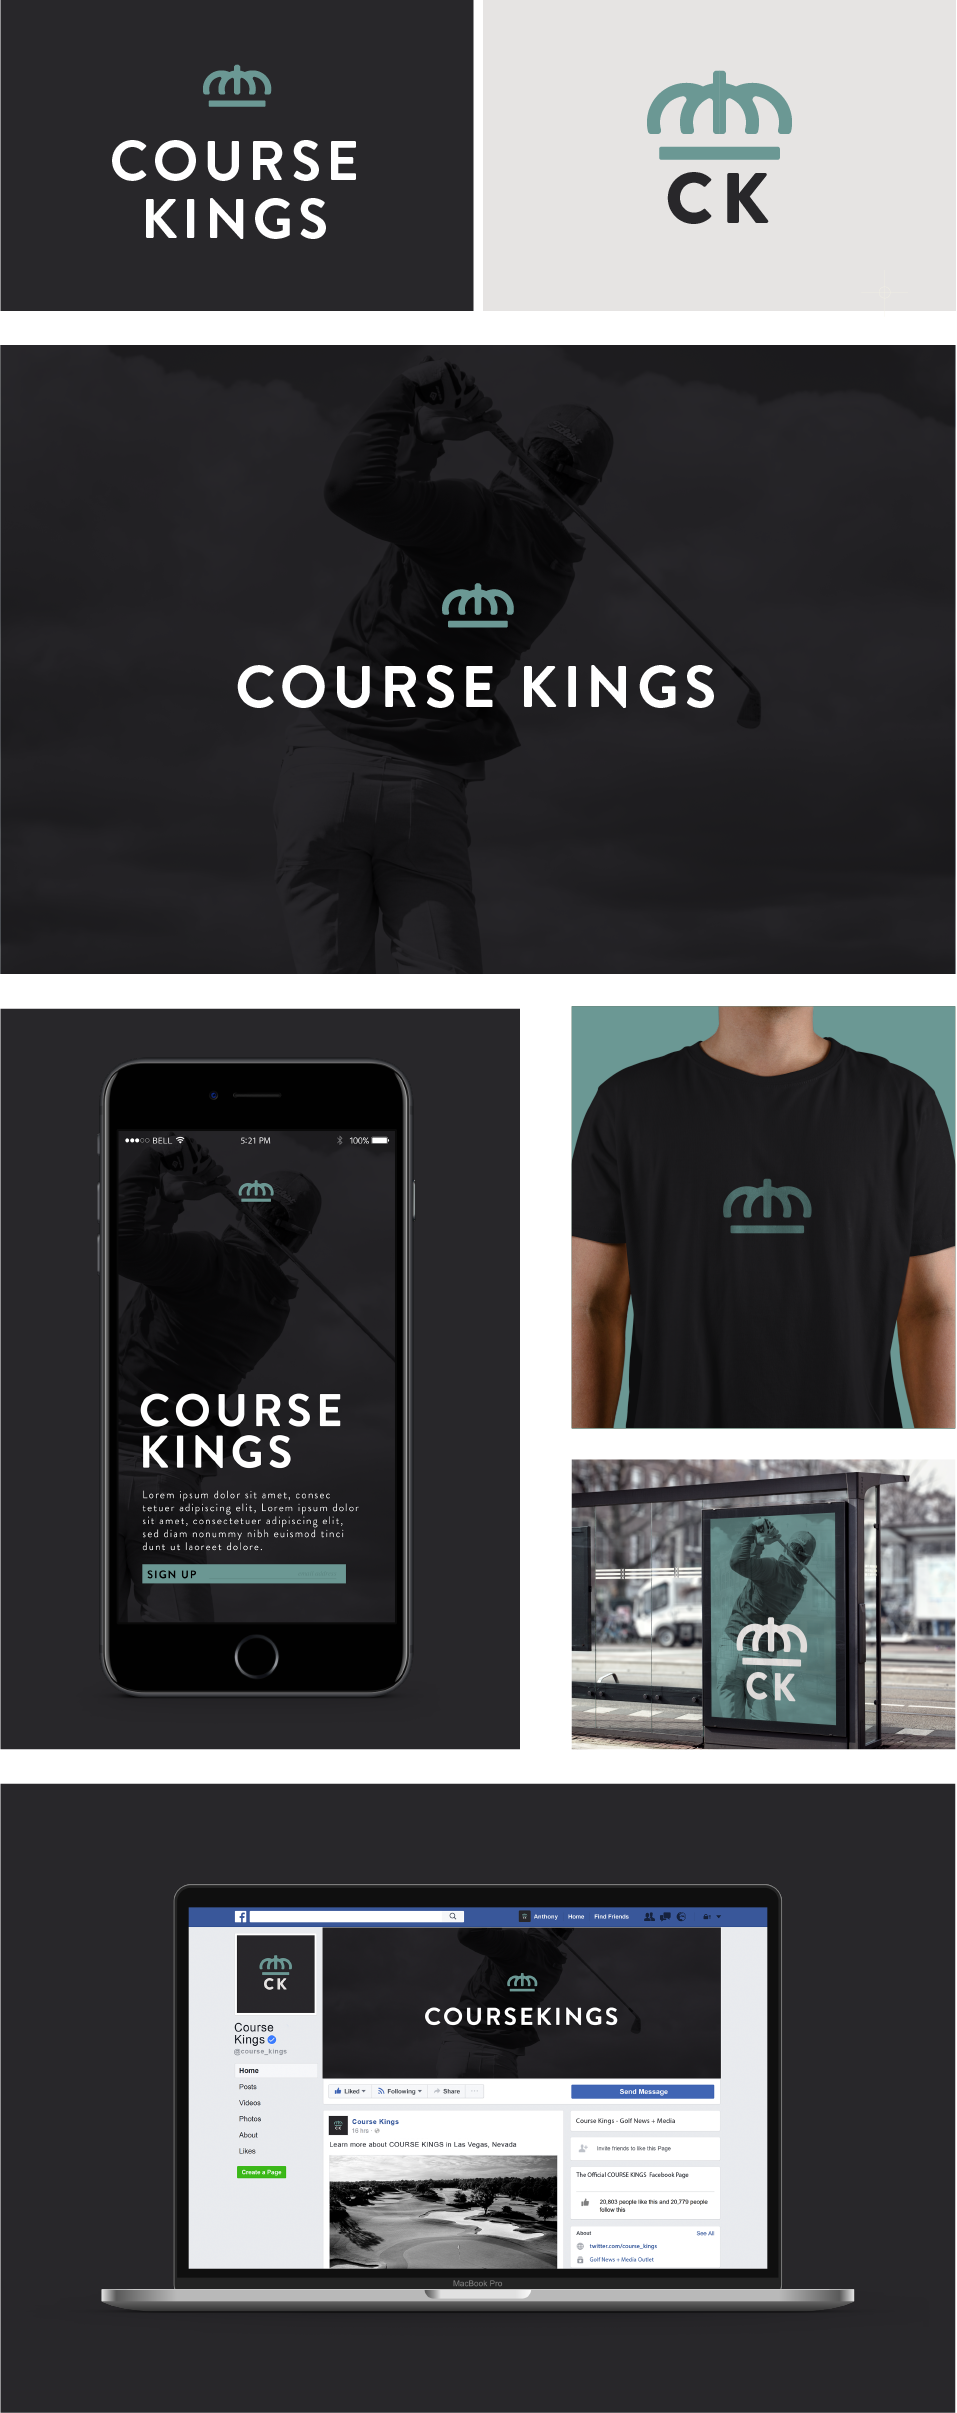 Course Kings Branding Design Draft